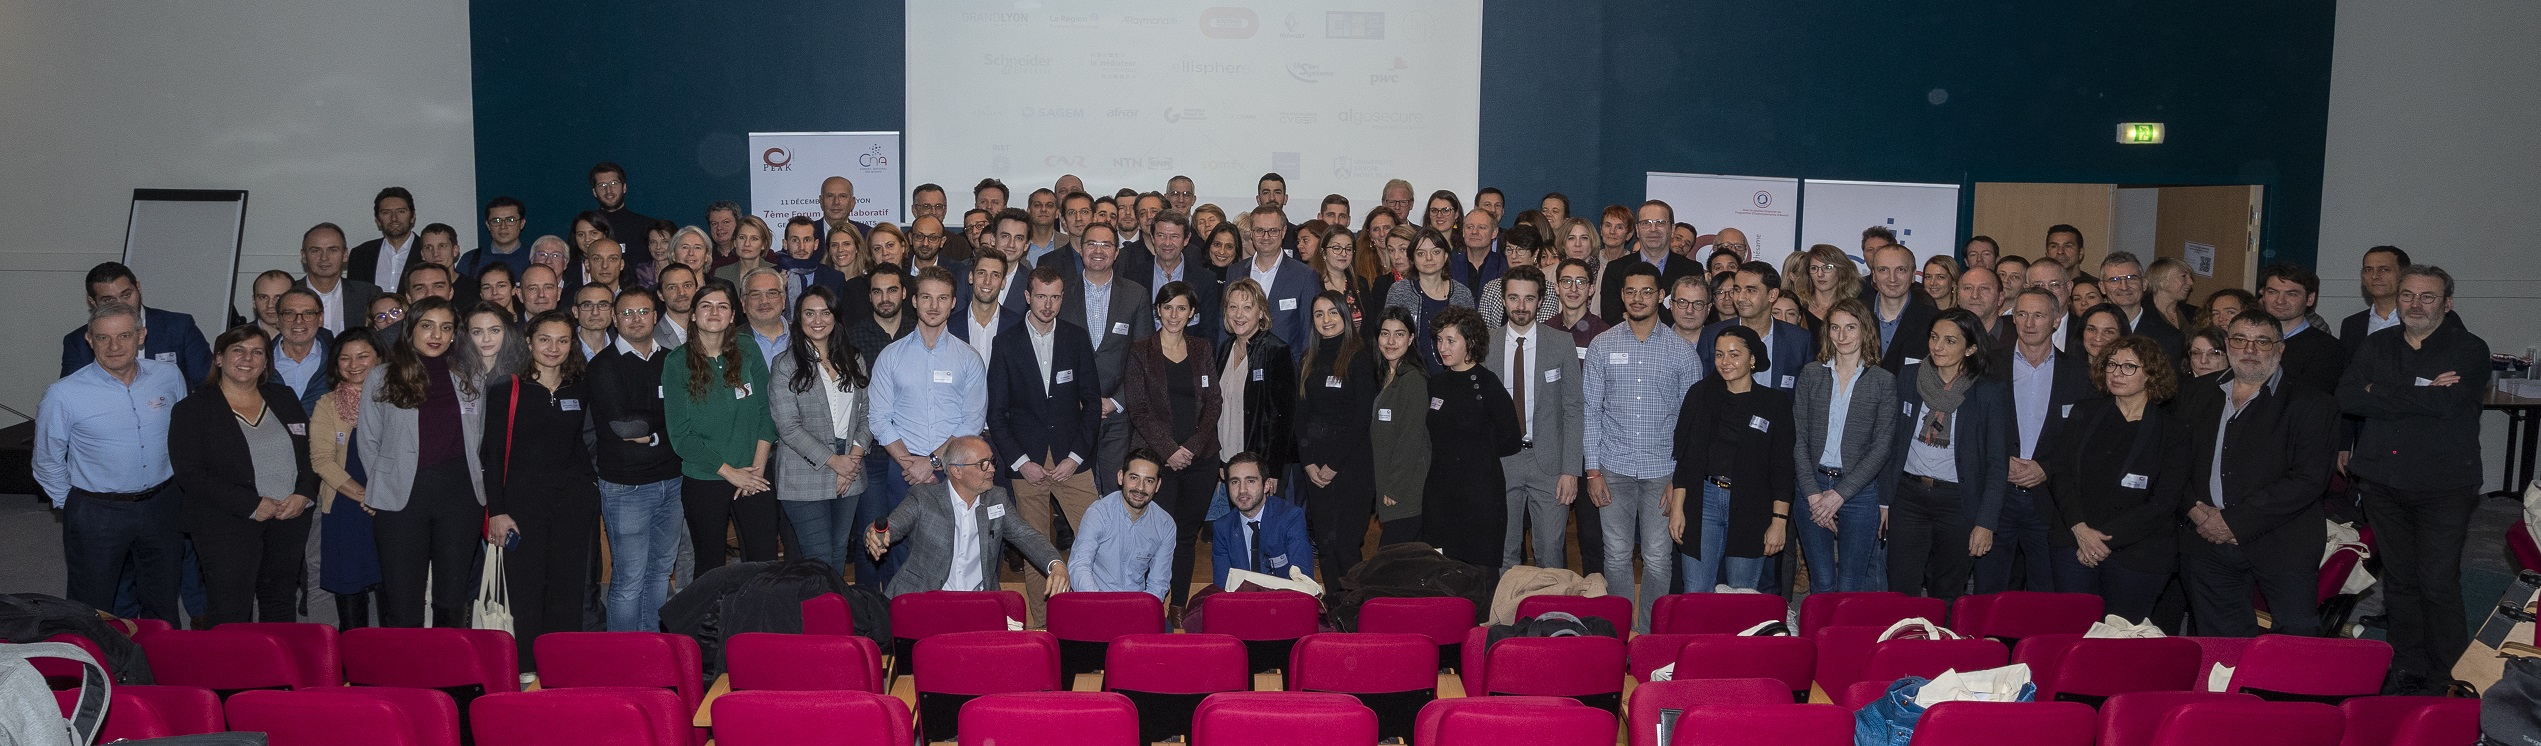 Merci aux 150 participants du 7ème Forum du Collaboratif !